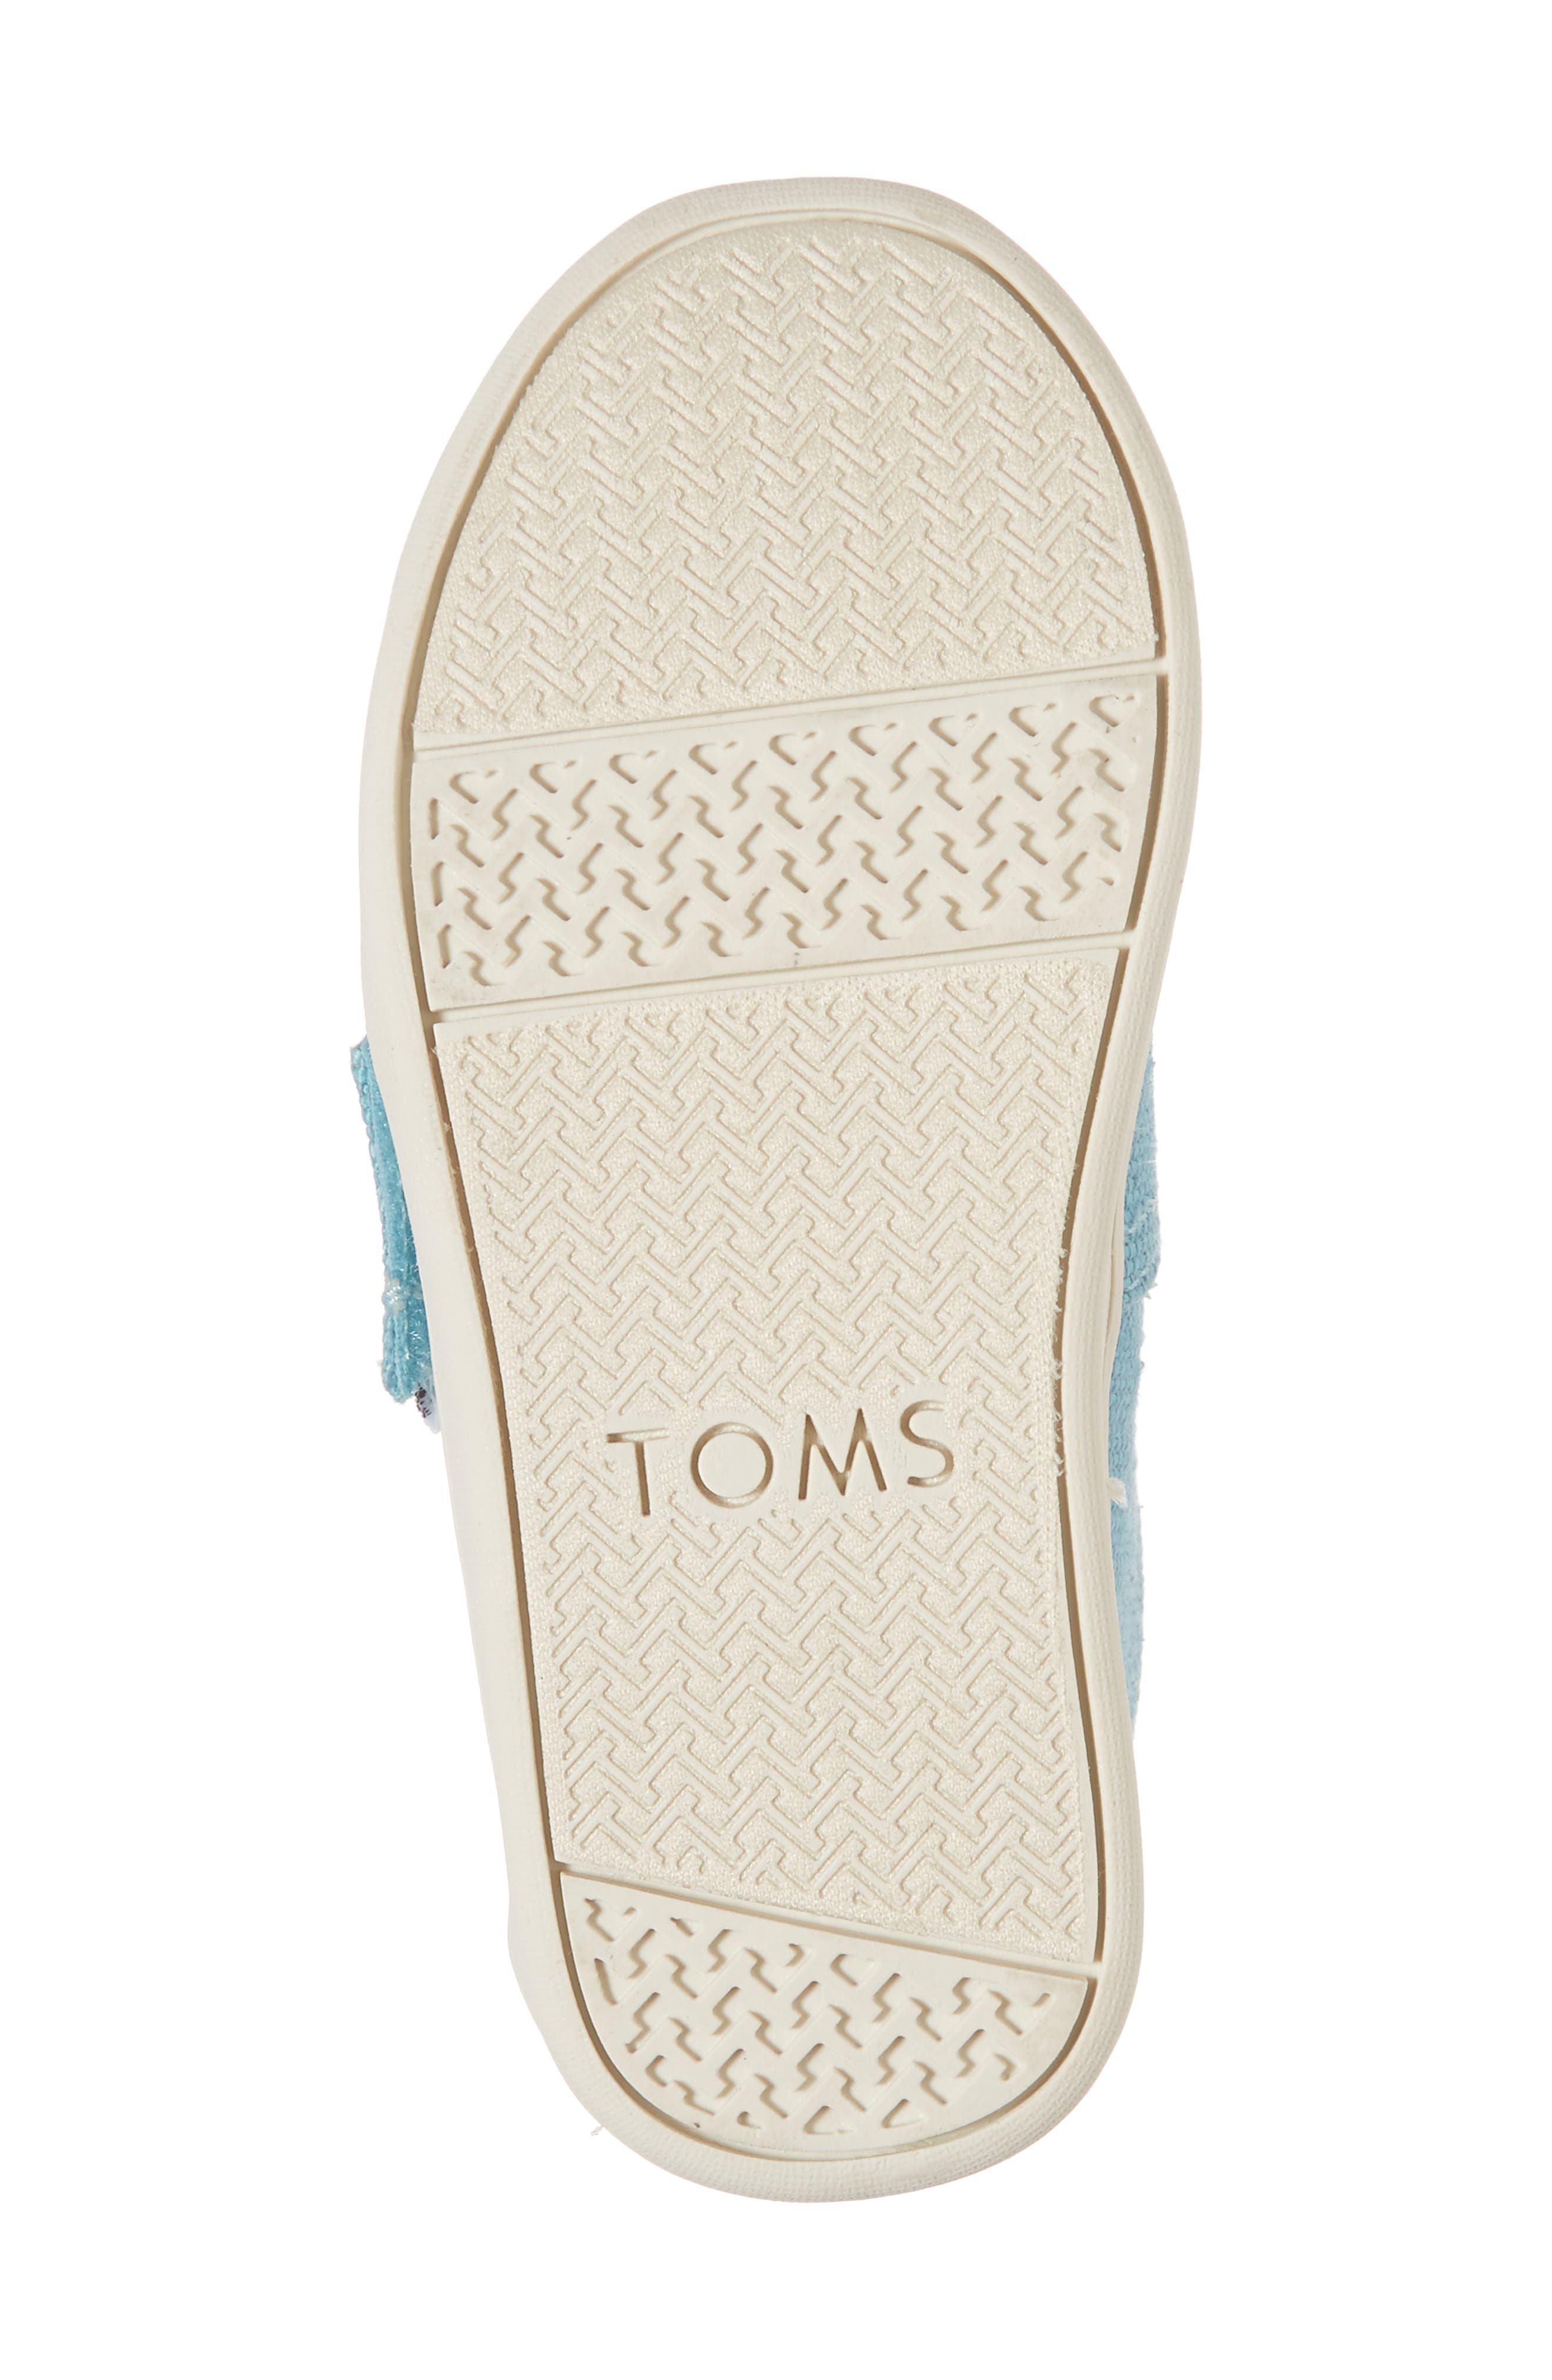 TOMS,                             Heritage Canvas Slip-On,                             Alternate thumbnail 6, color,                             430